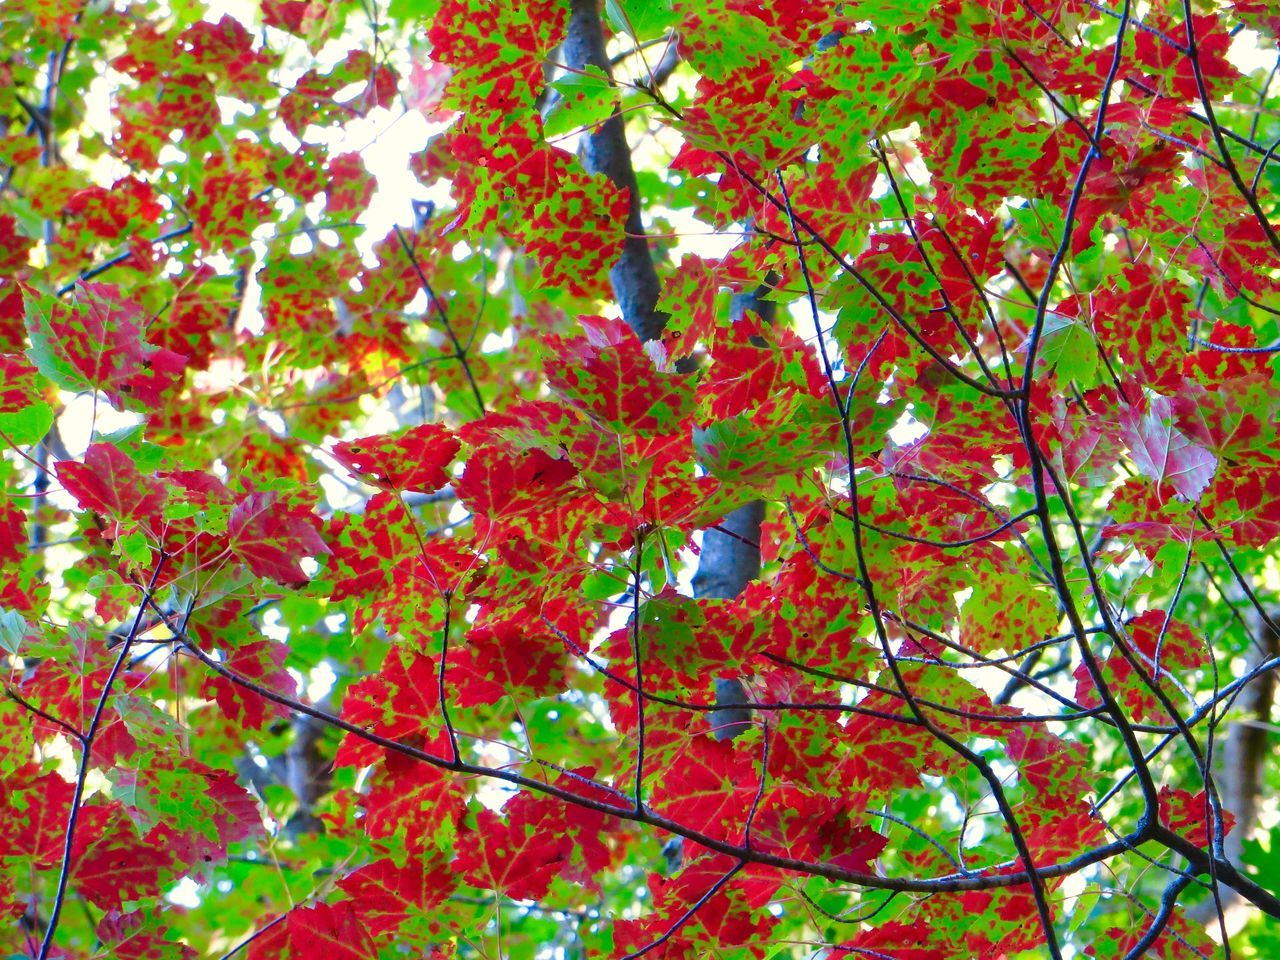 leaf, tree, branch, growth, low angle view, nature, beauty in nature, day, outdoors, no people, red, backgrounds, autumn, freshness, fragility, close-up, sky